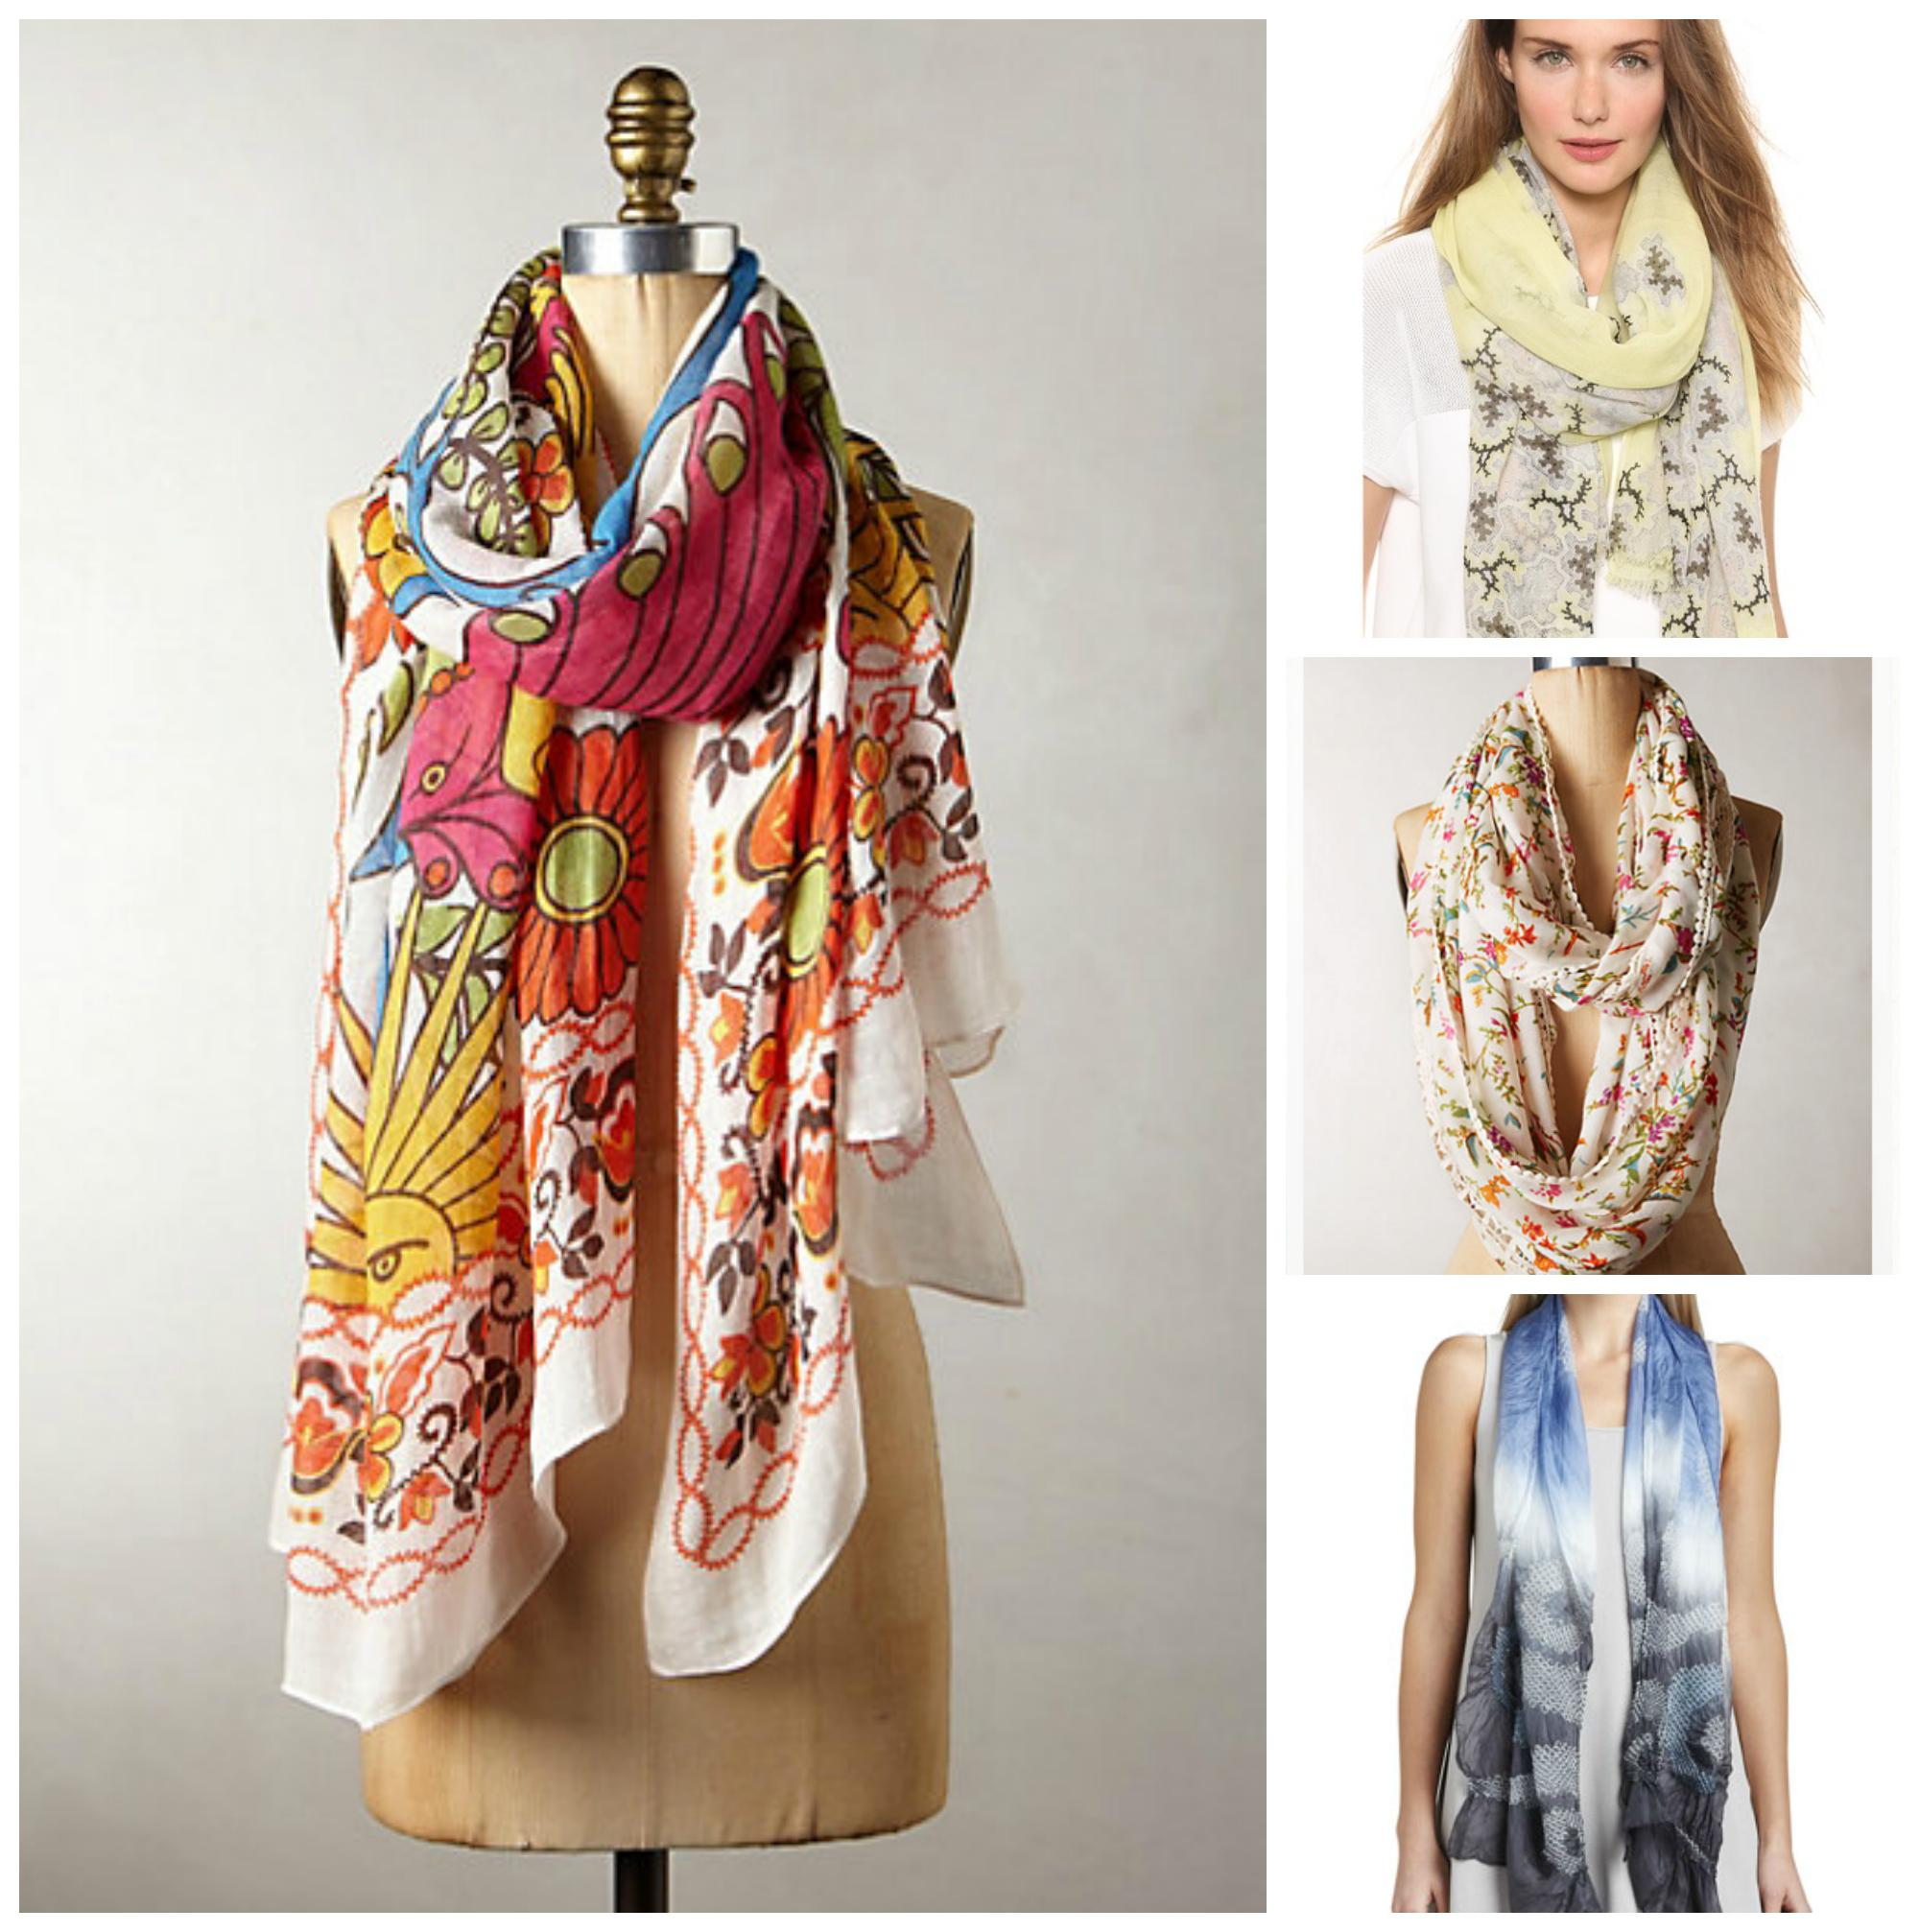 20 cute scarves to wear for summer AND fall: http://t.co/Dci8HaVLHg http://t.co/rYaNaRvBNN